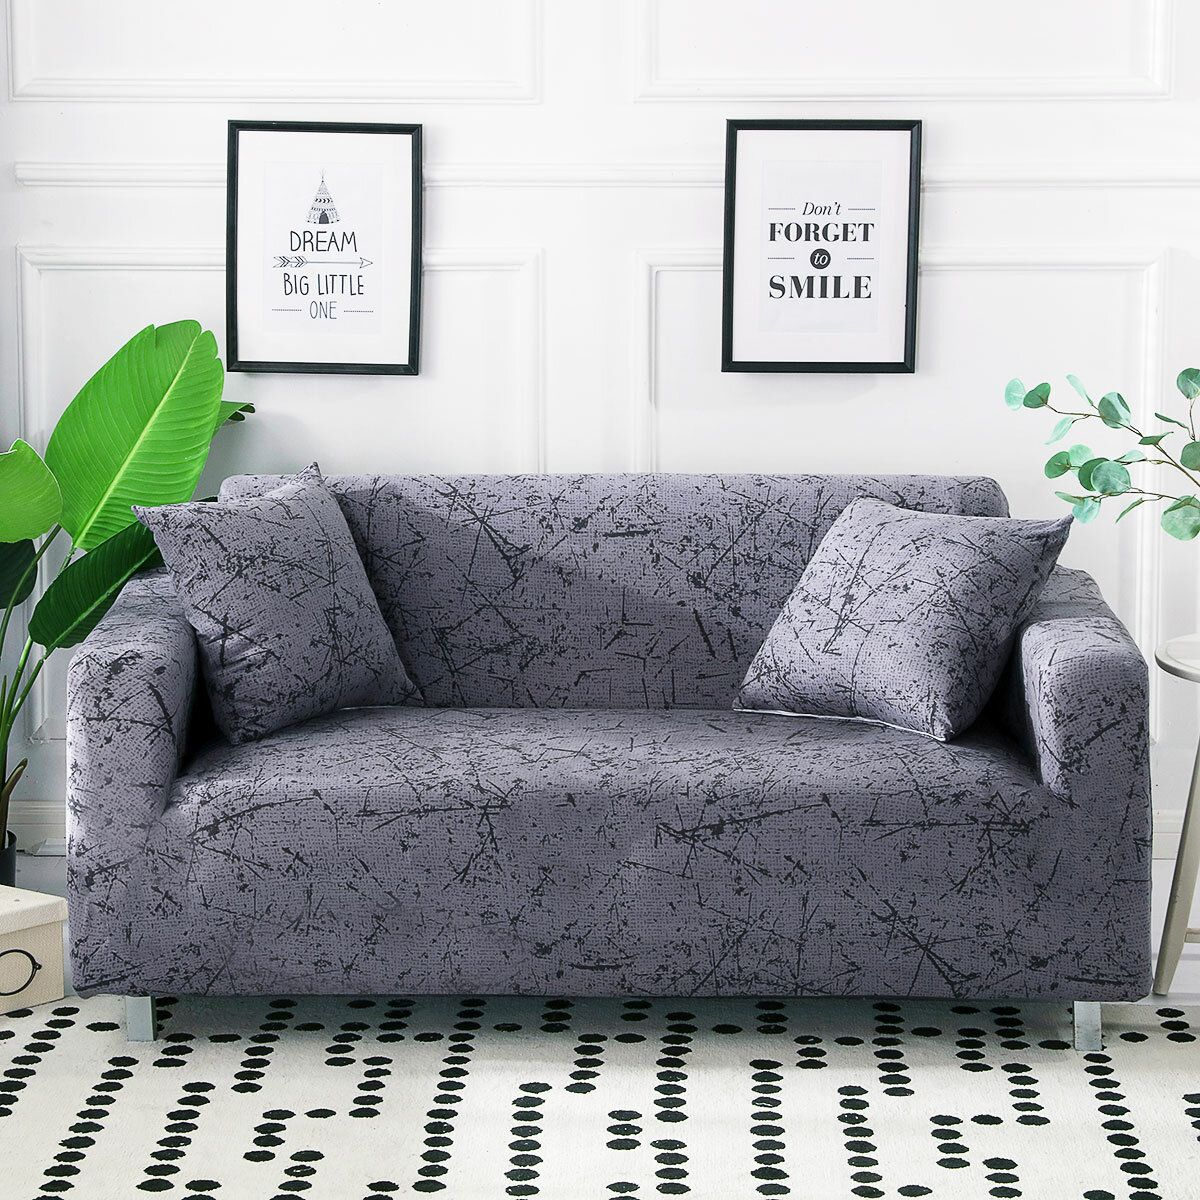 Stretch Sofa Cover For Living Room Couch Cover L Shape Armchair Cover Single Two Three Seat Couch Covers Slip Covers Couch Sofa Covers